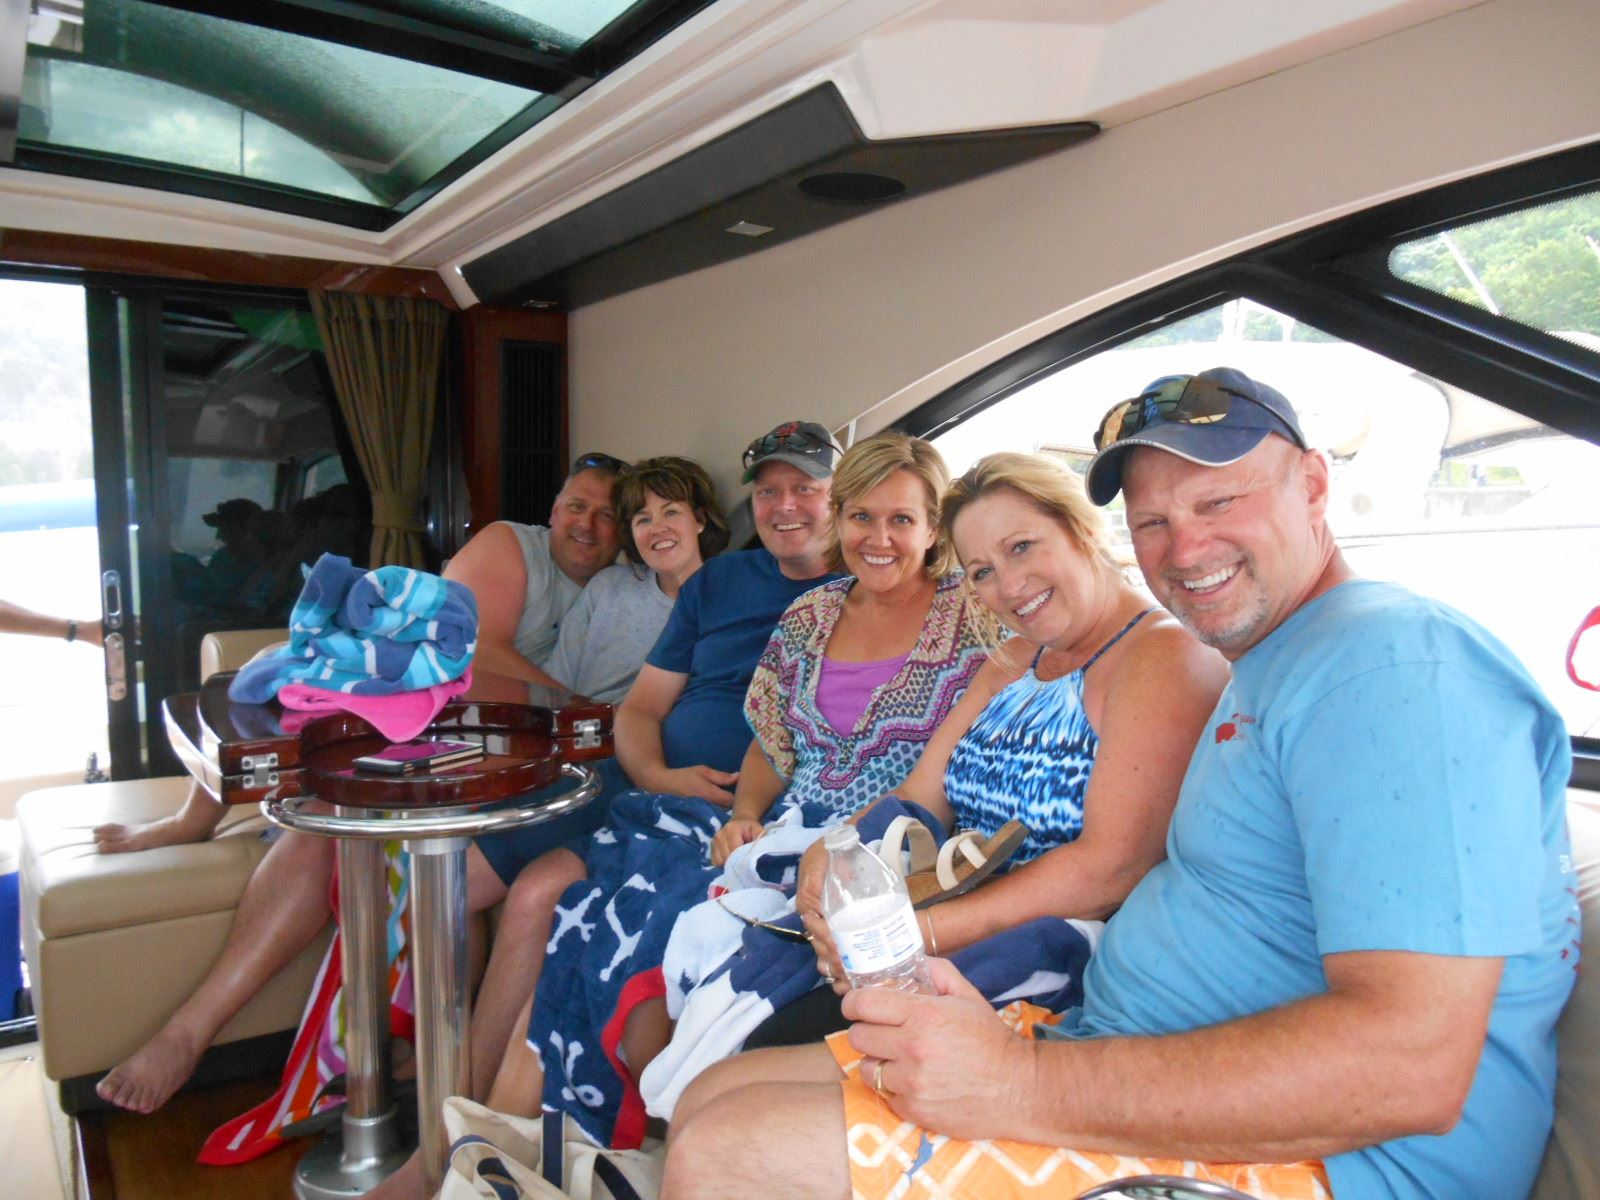 get-together-on-boat.jpg